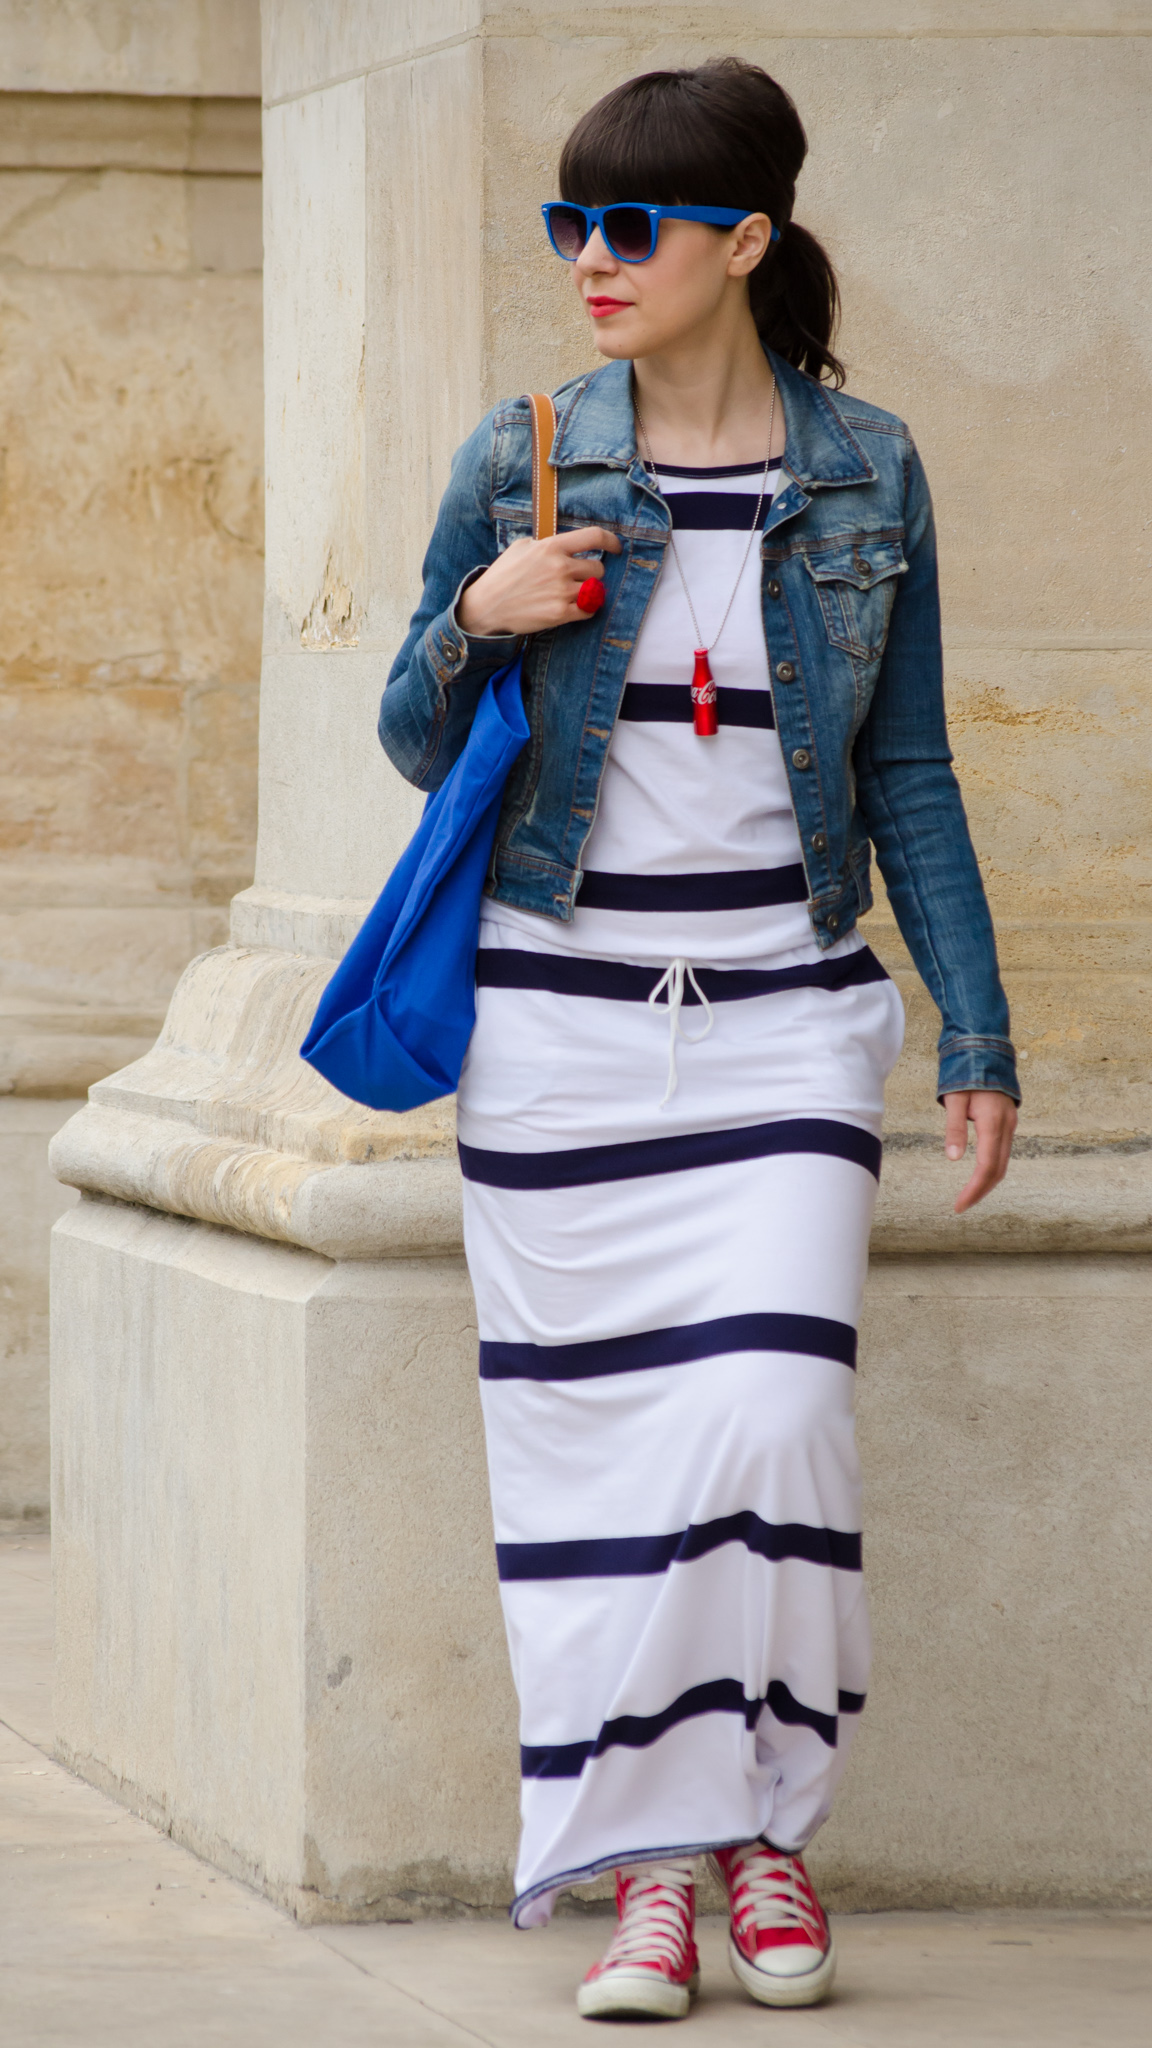 stripes maxi dress blue coca cola bottle converse red blue bag navy jeans jacket